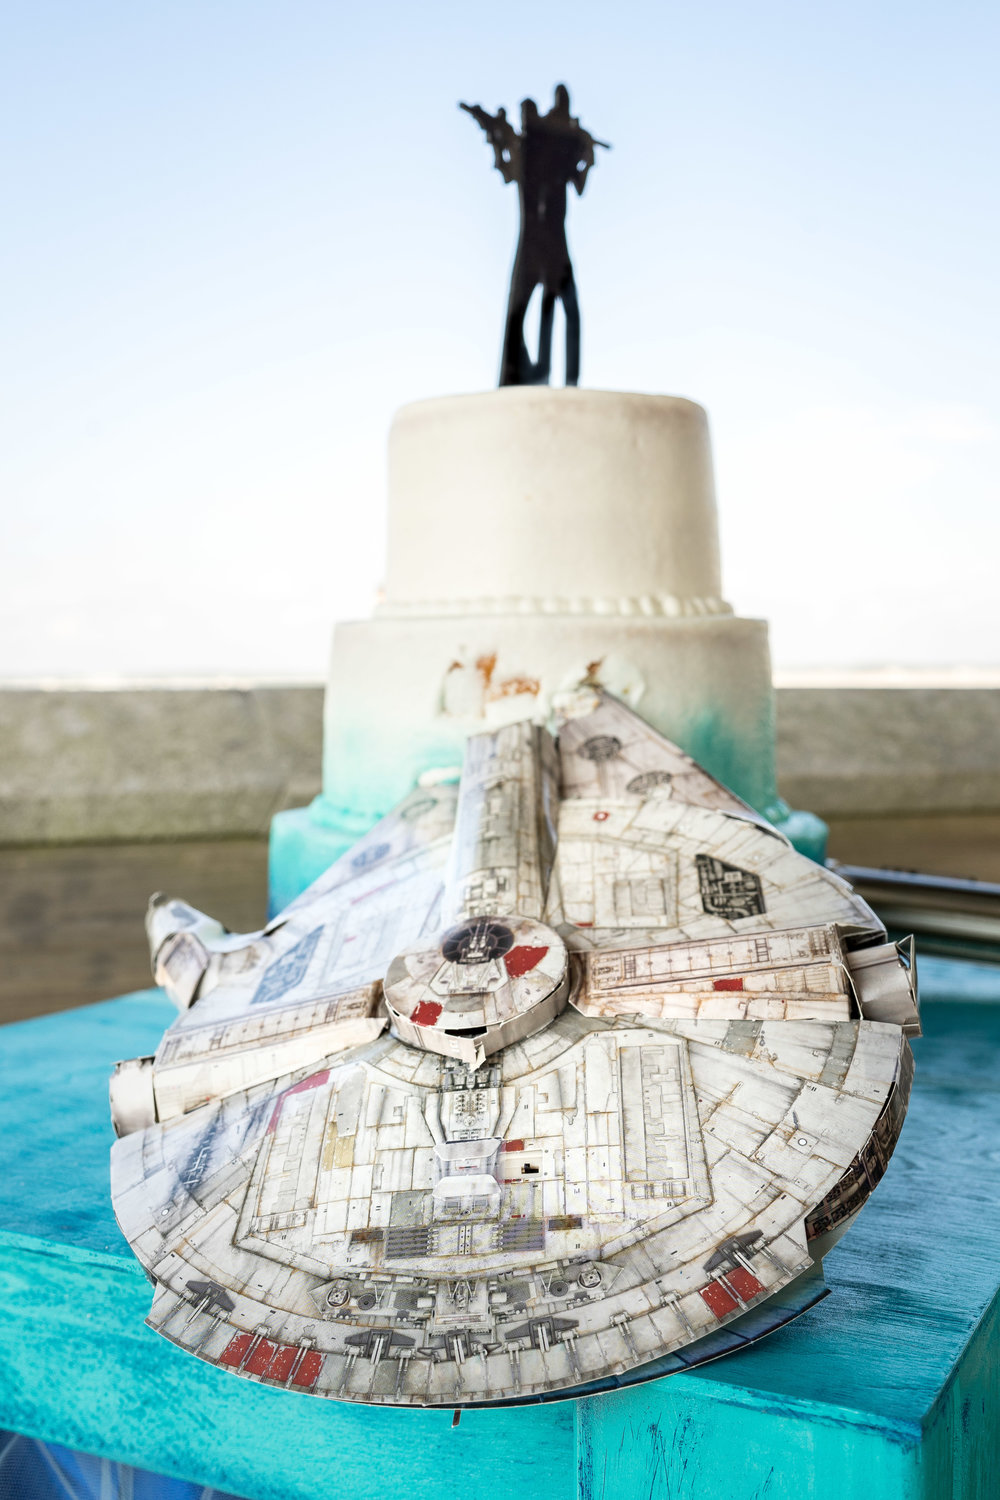 image of millennium falcon crashed into wedding cake pensacola wedding